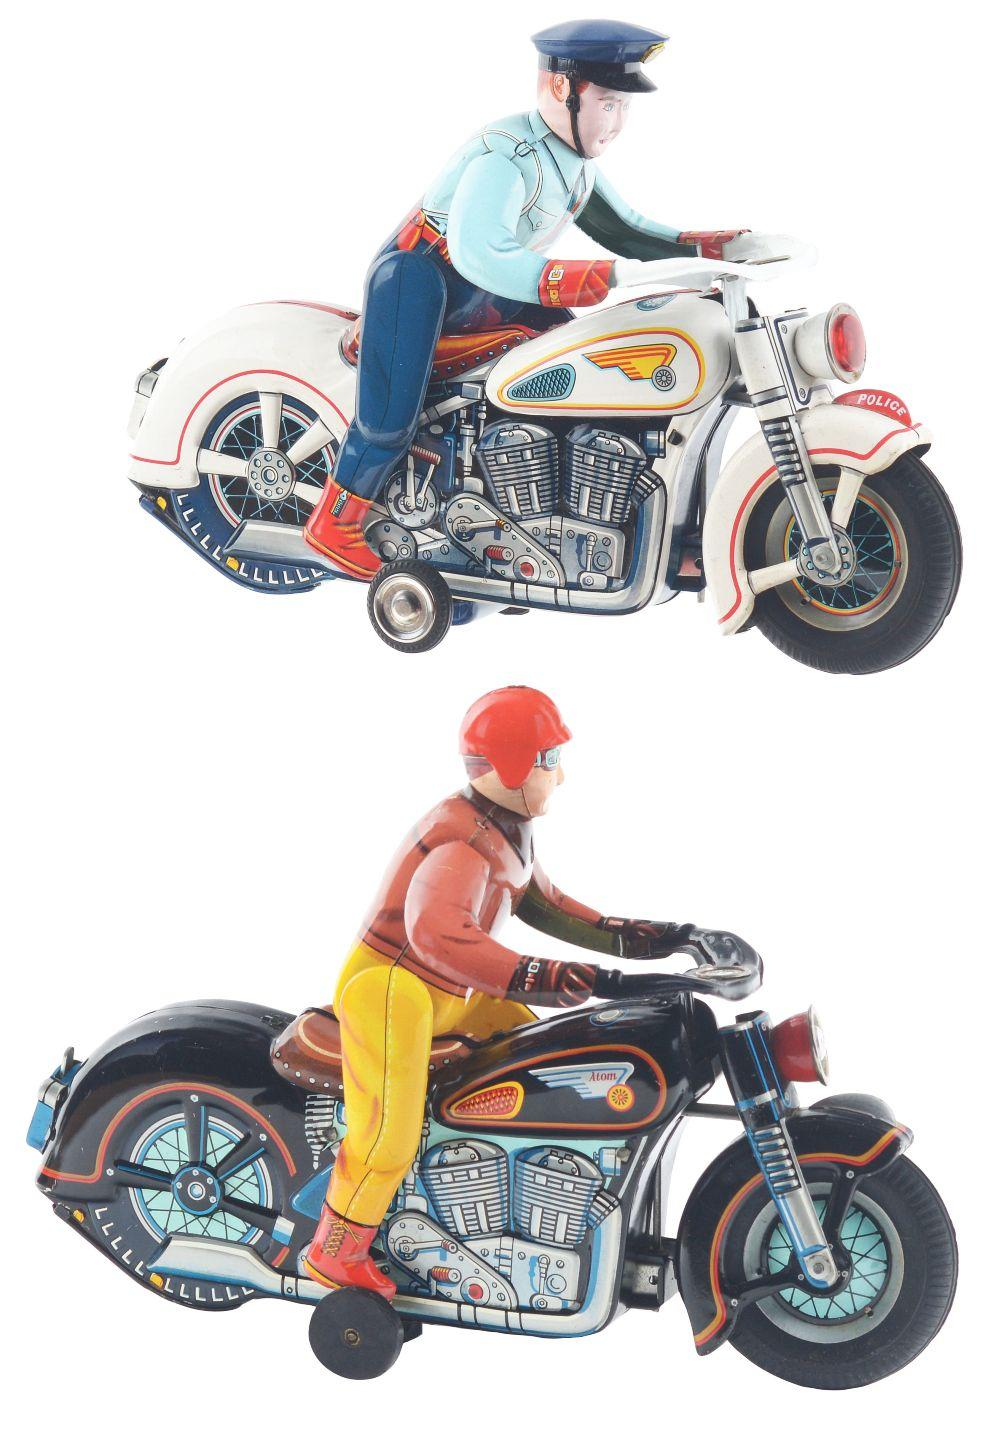 Lot 2240: Lot of 2: Japanese Tin-Litho Battery-Operated Motorcycle Toys.